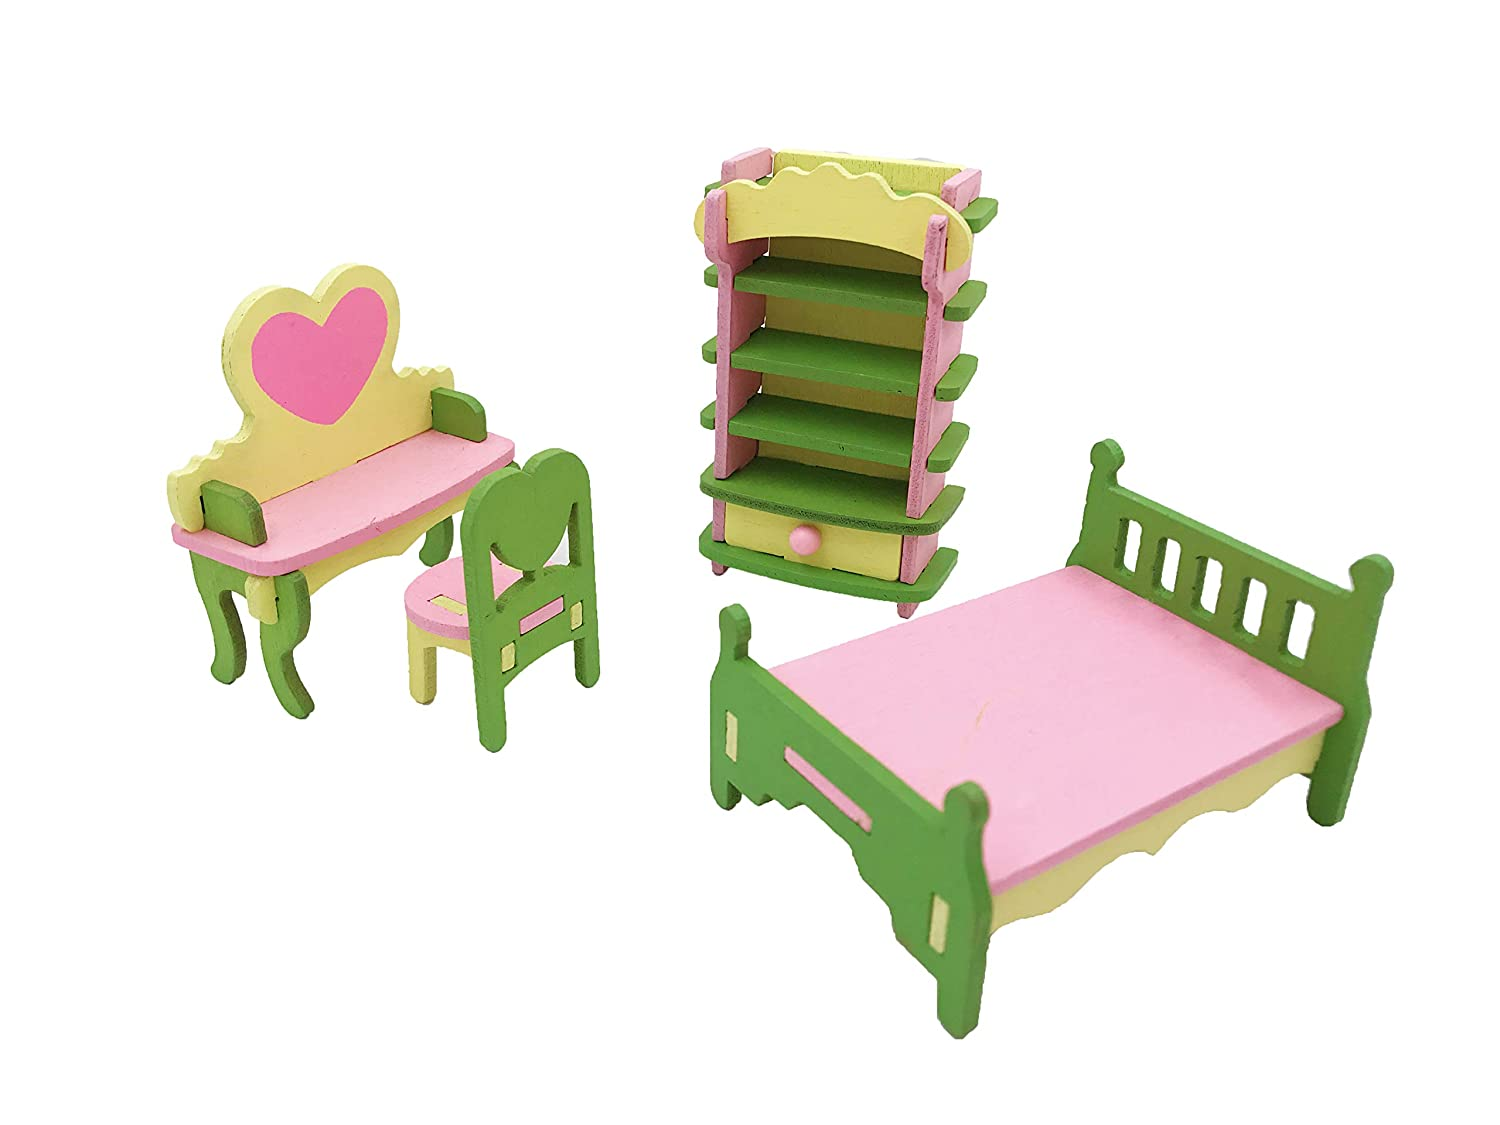 Smooth Edges Twenis 1//12 Dollhouse Furniture Set of 4 Bedroom Accessories in Wood Pretend Play Nontoxic Paint